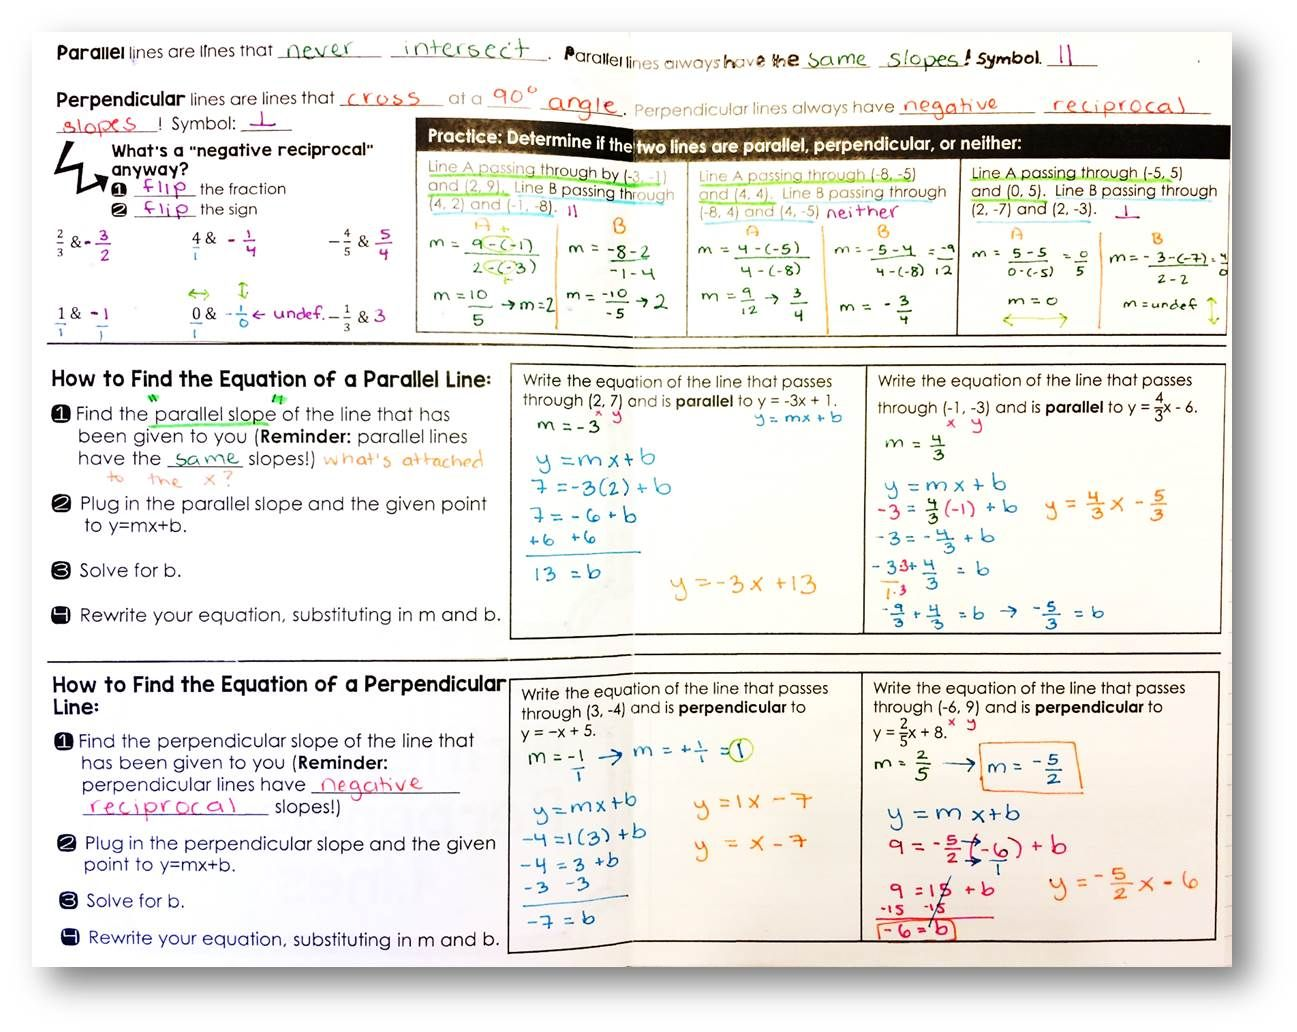 How Do You Write Equations Of Parallel And Perpendicular